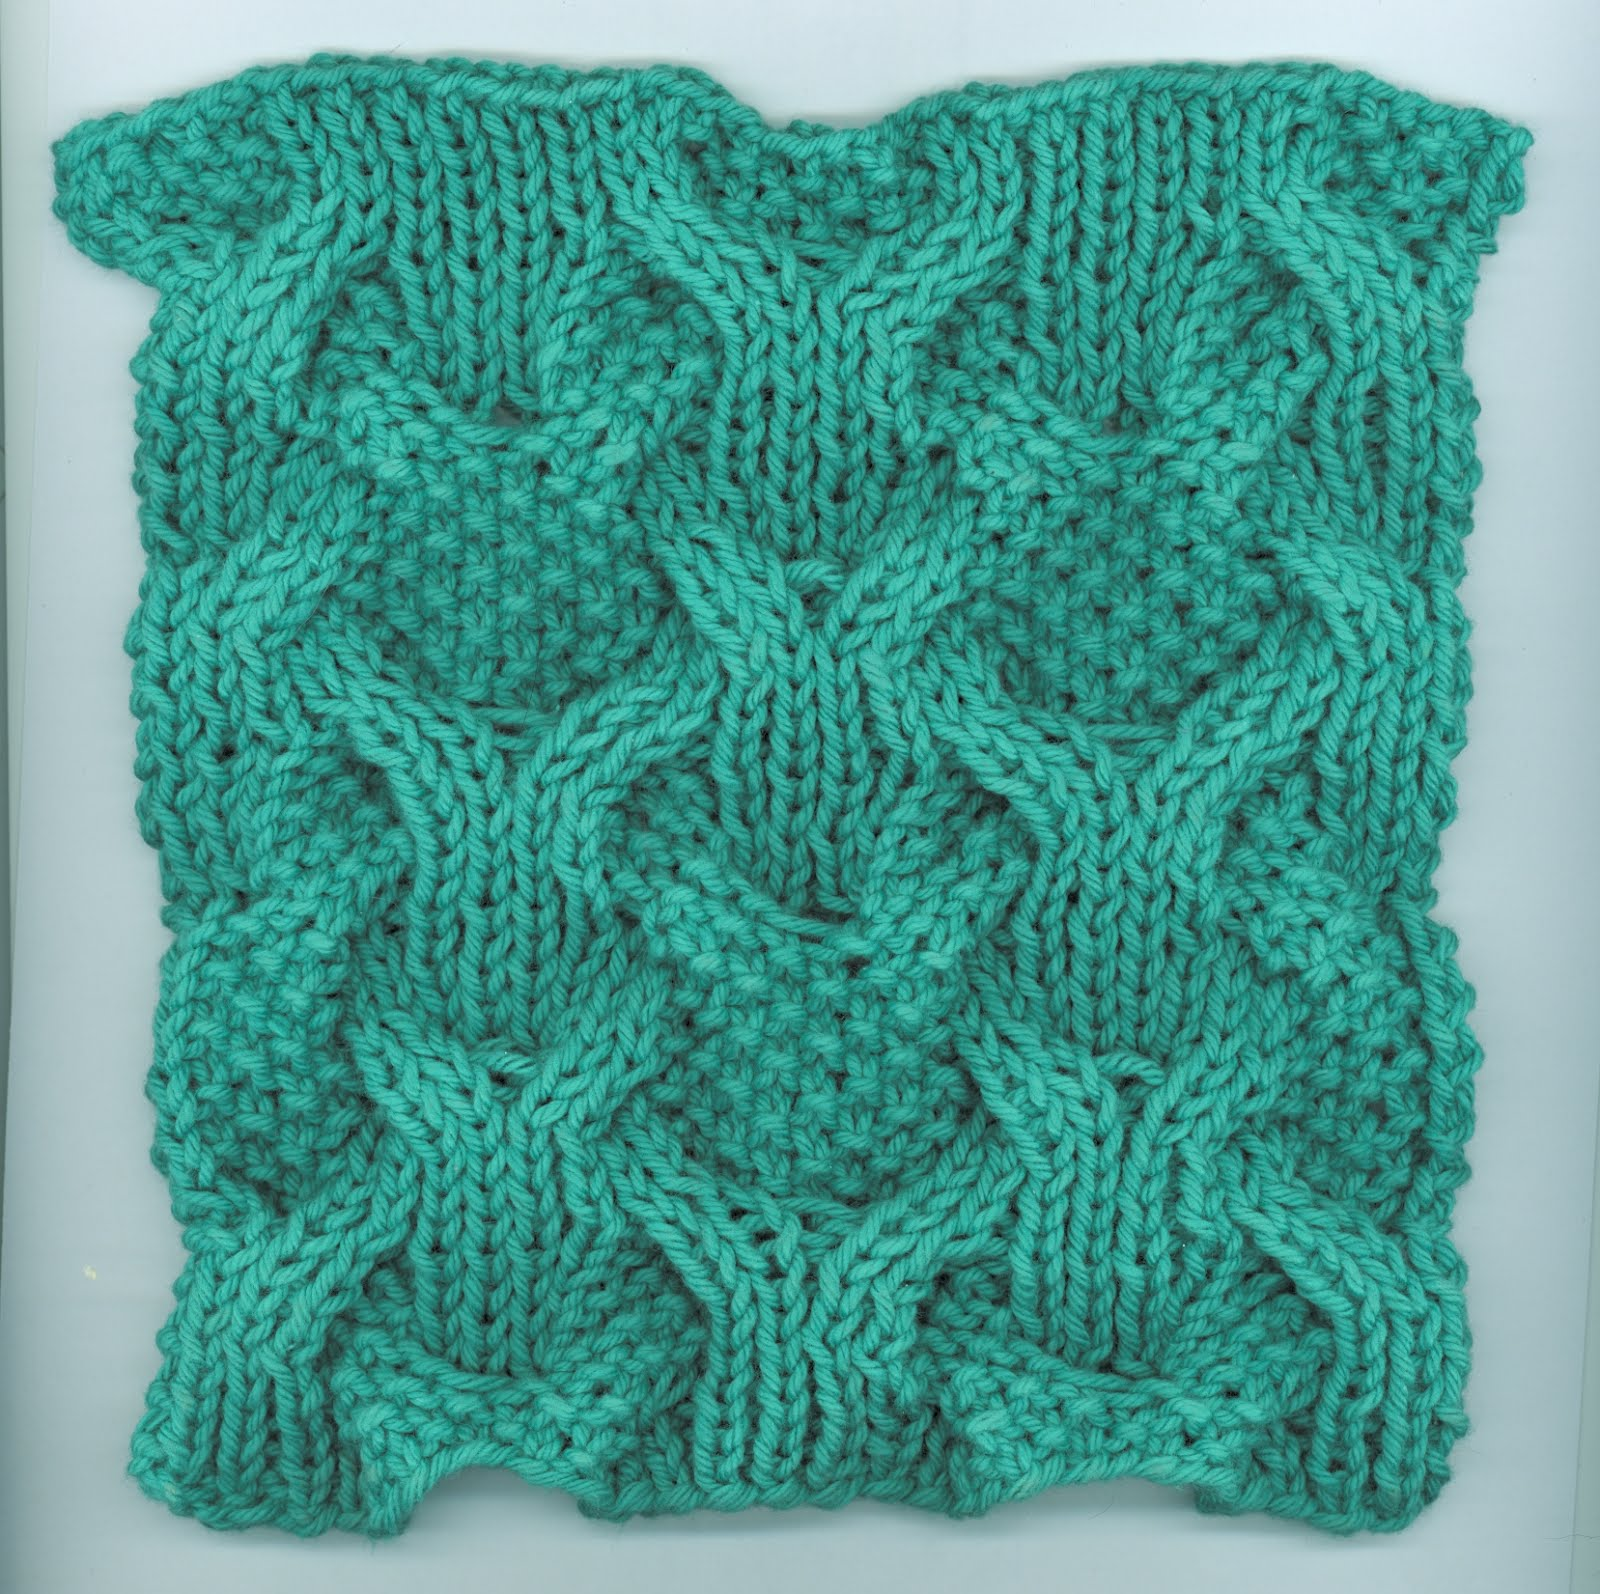 Reversible Knitting Stitches Cables : Saras Colorwave Blog: REVERSIBLY CABLED DISHCLOTH